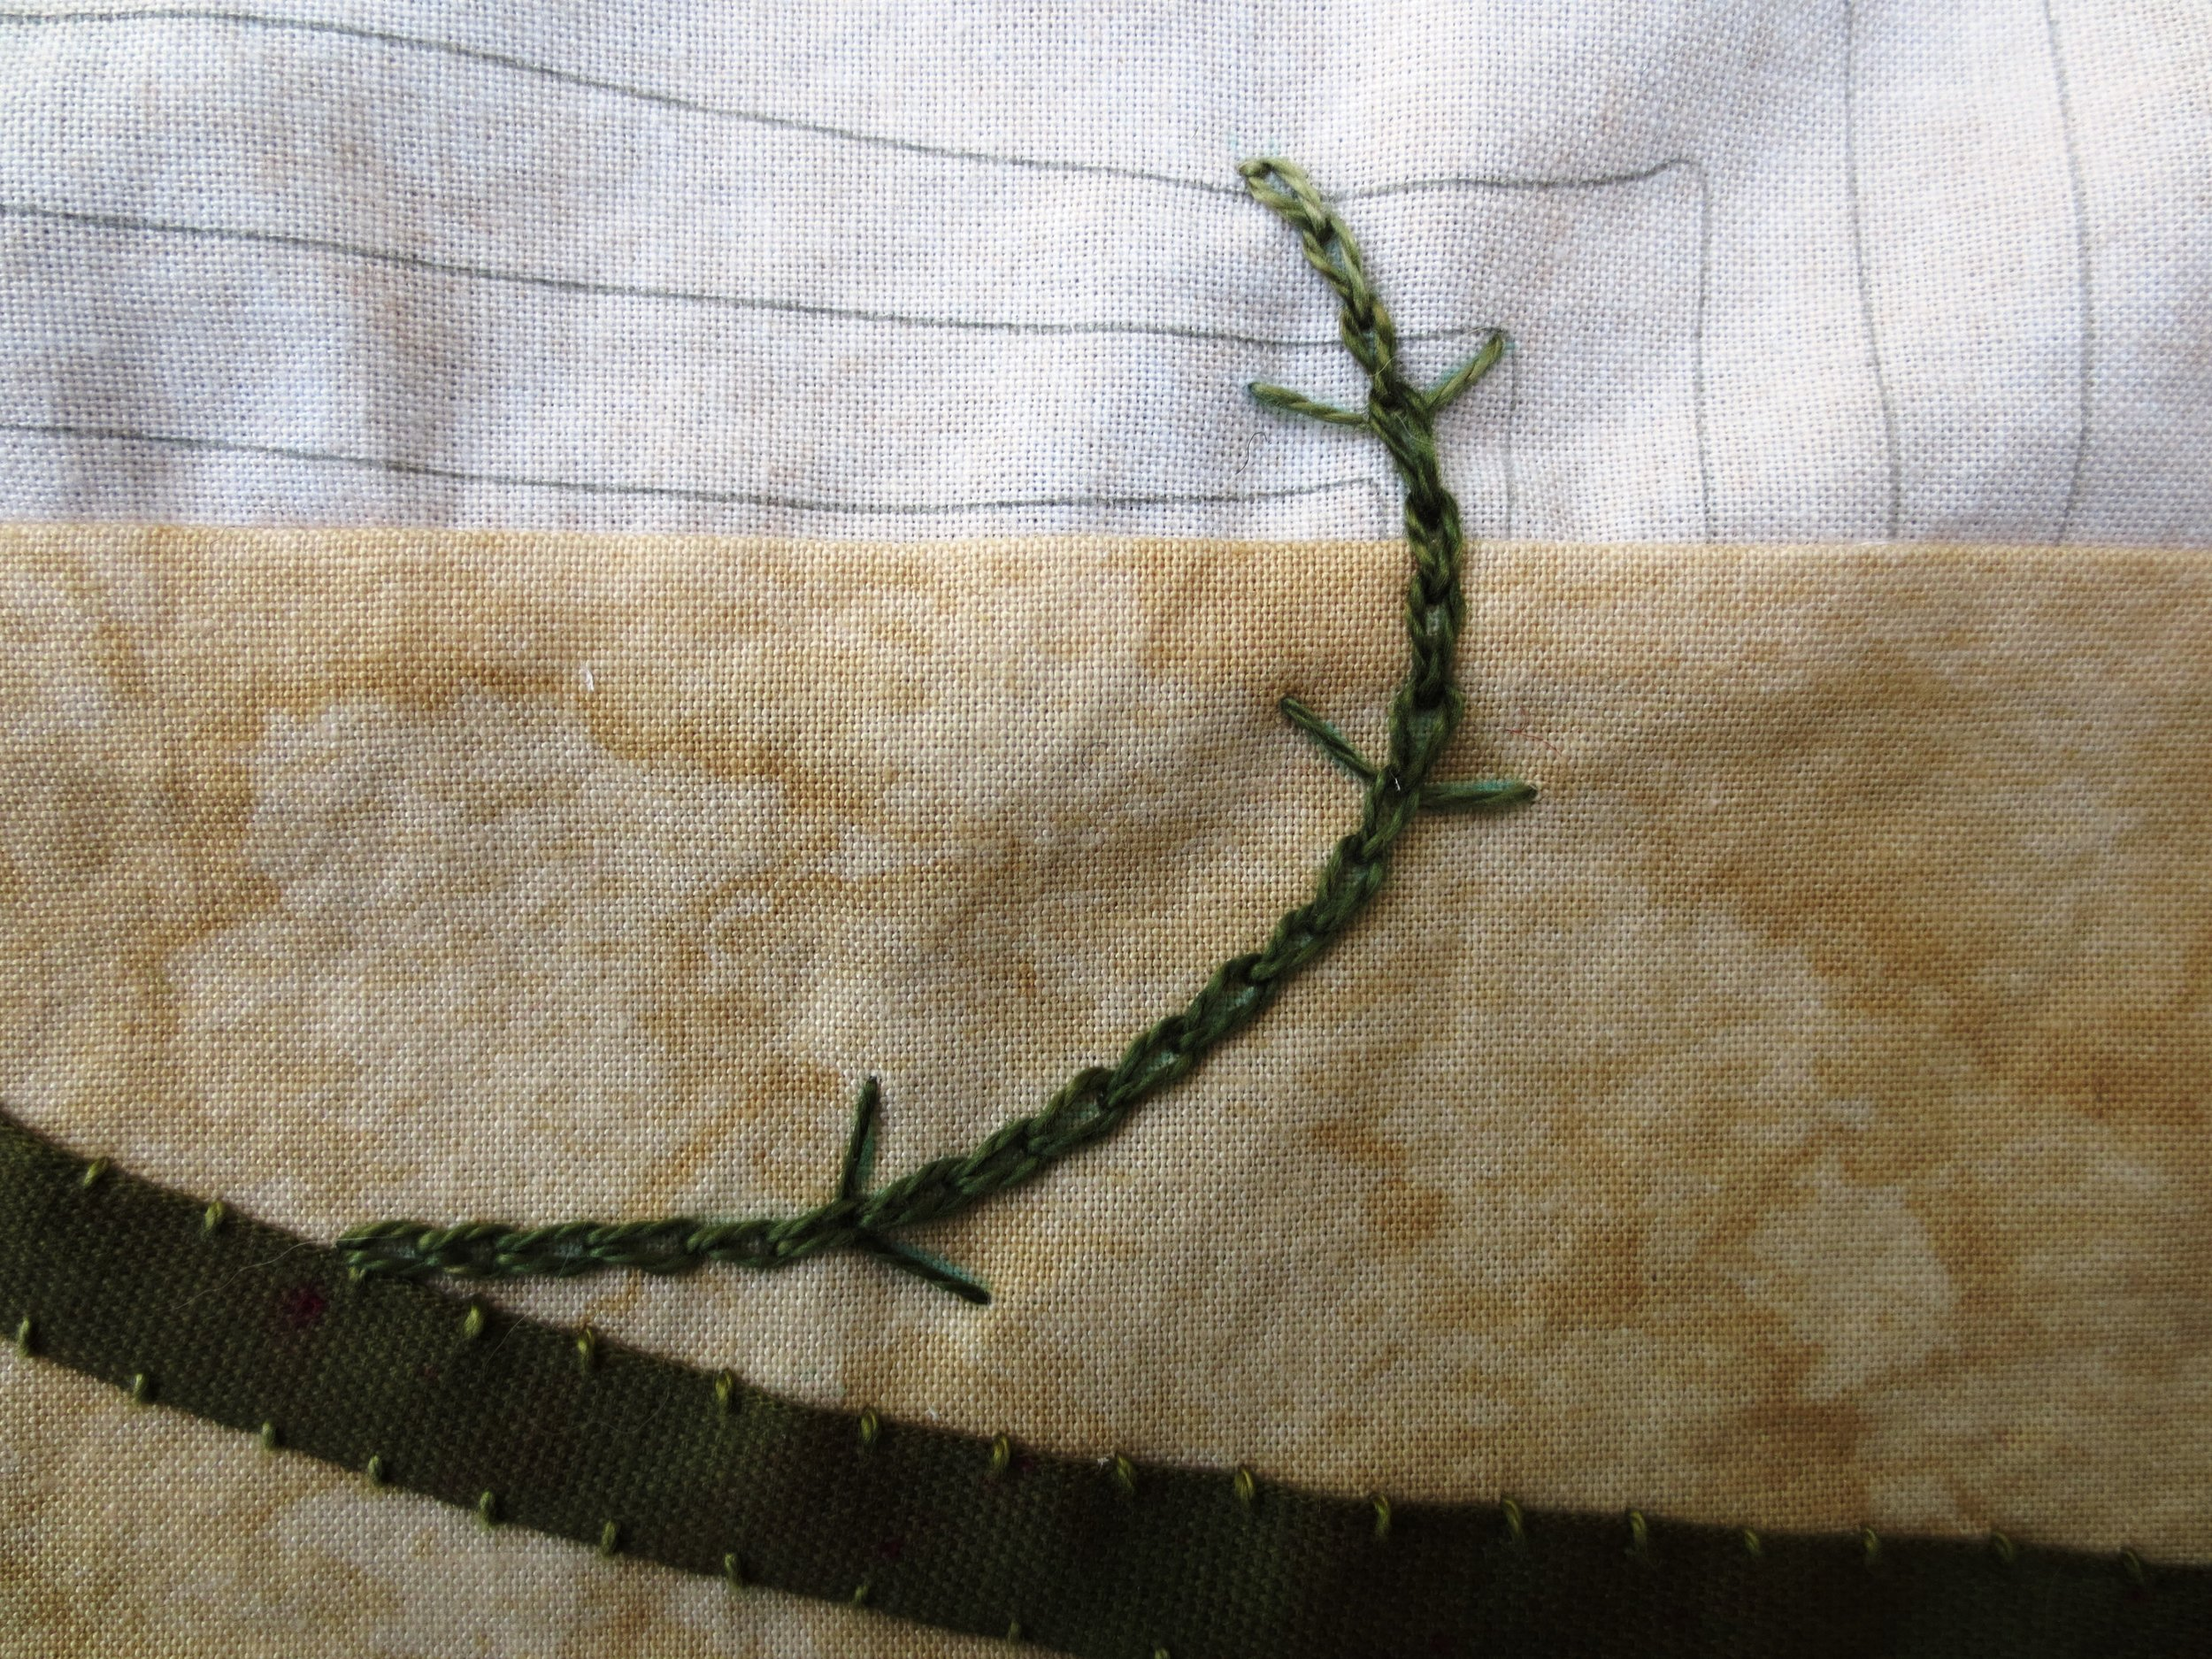 berry stem bottom 6.JPG